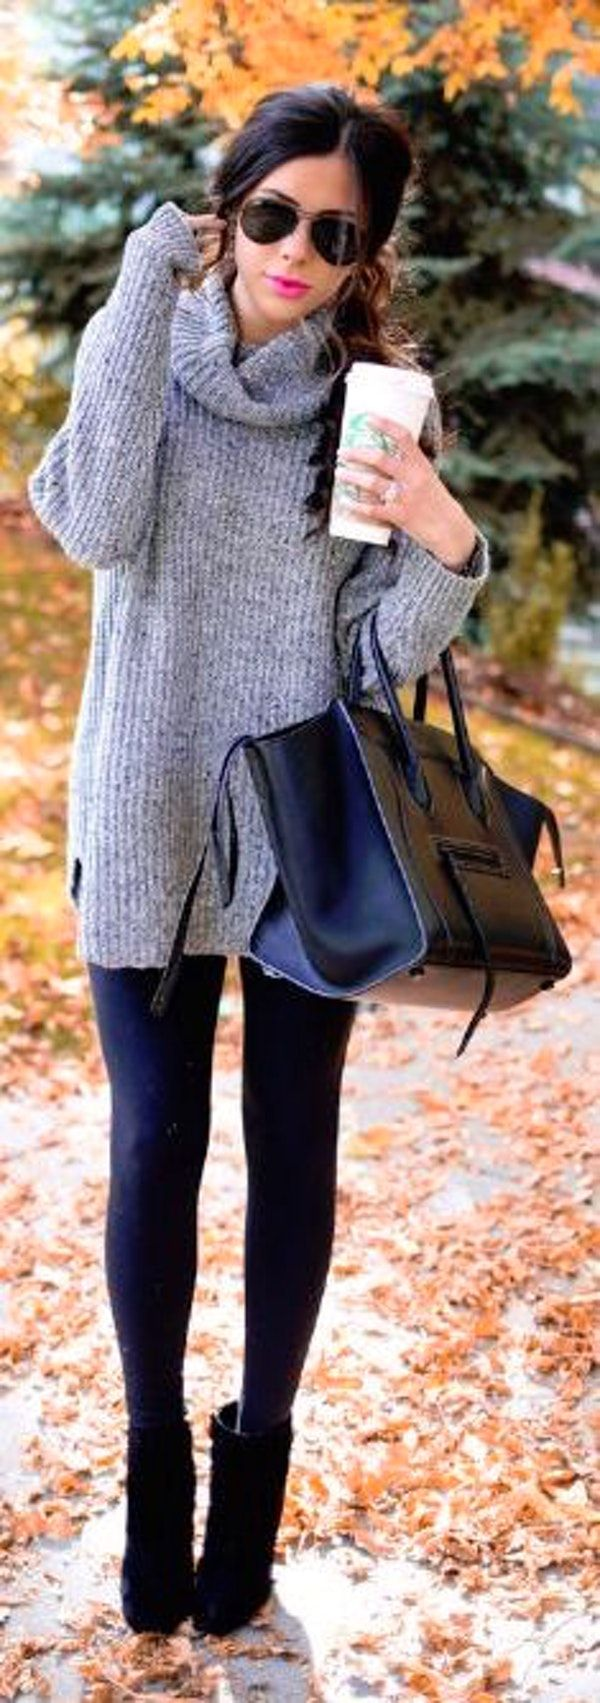 #thanksgiving #fashion ·  Grey Turtleneck Knit // Black Leather Bag // Black Leggings // Black Booties